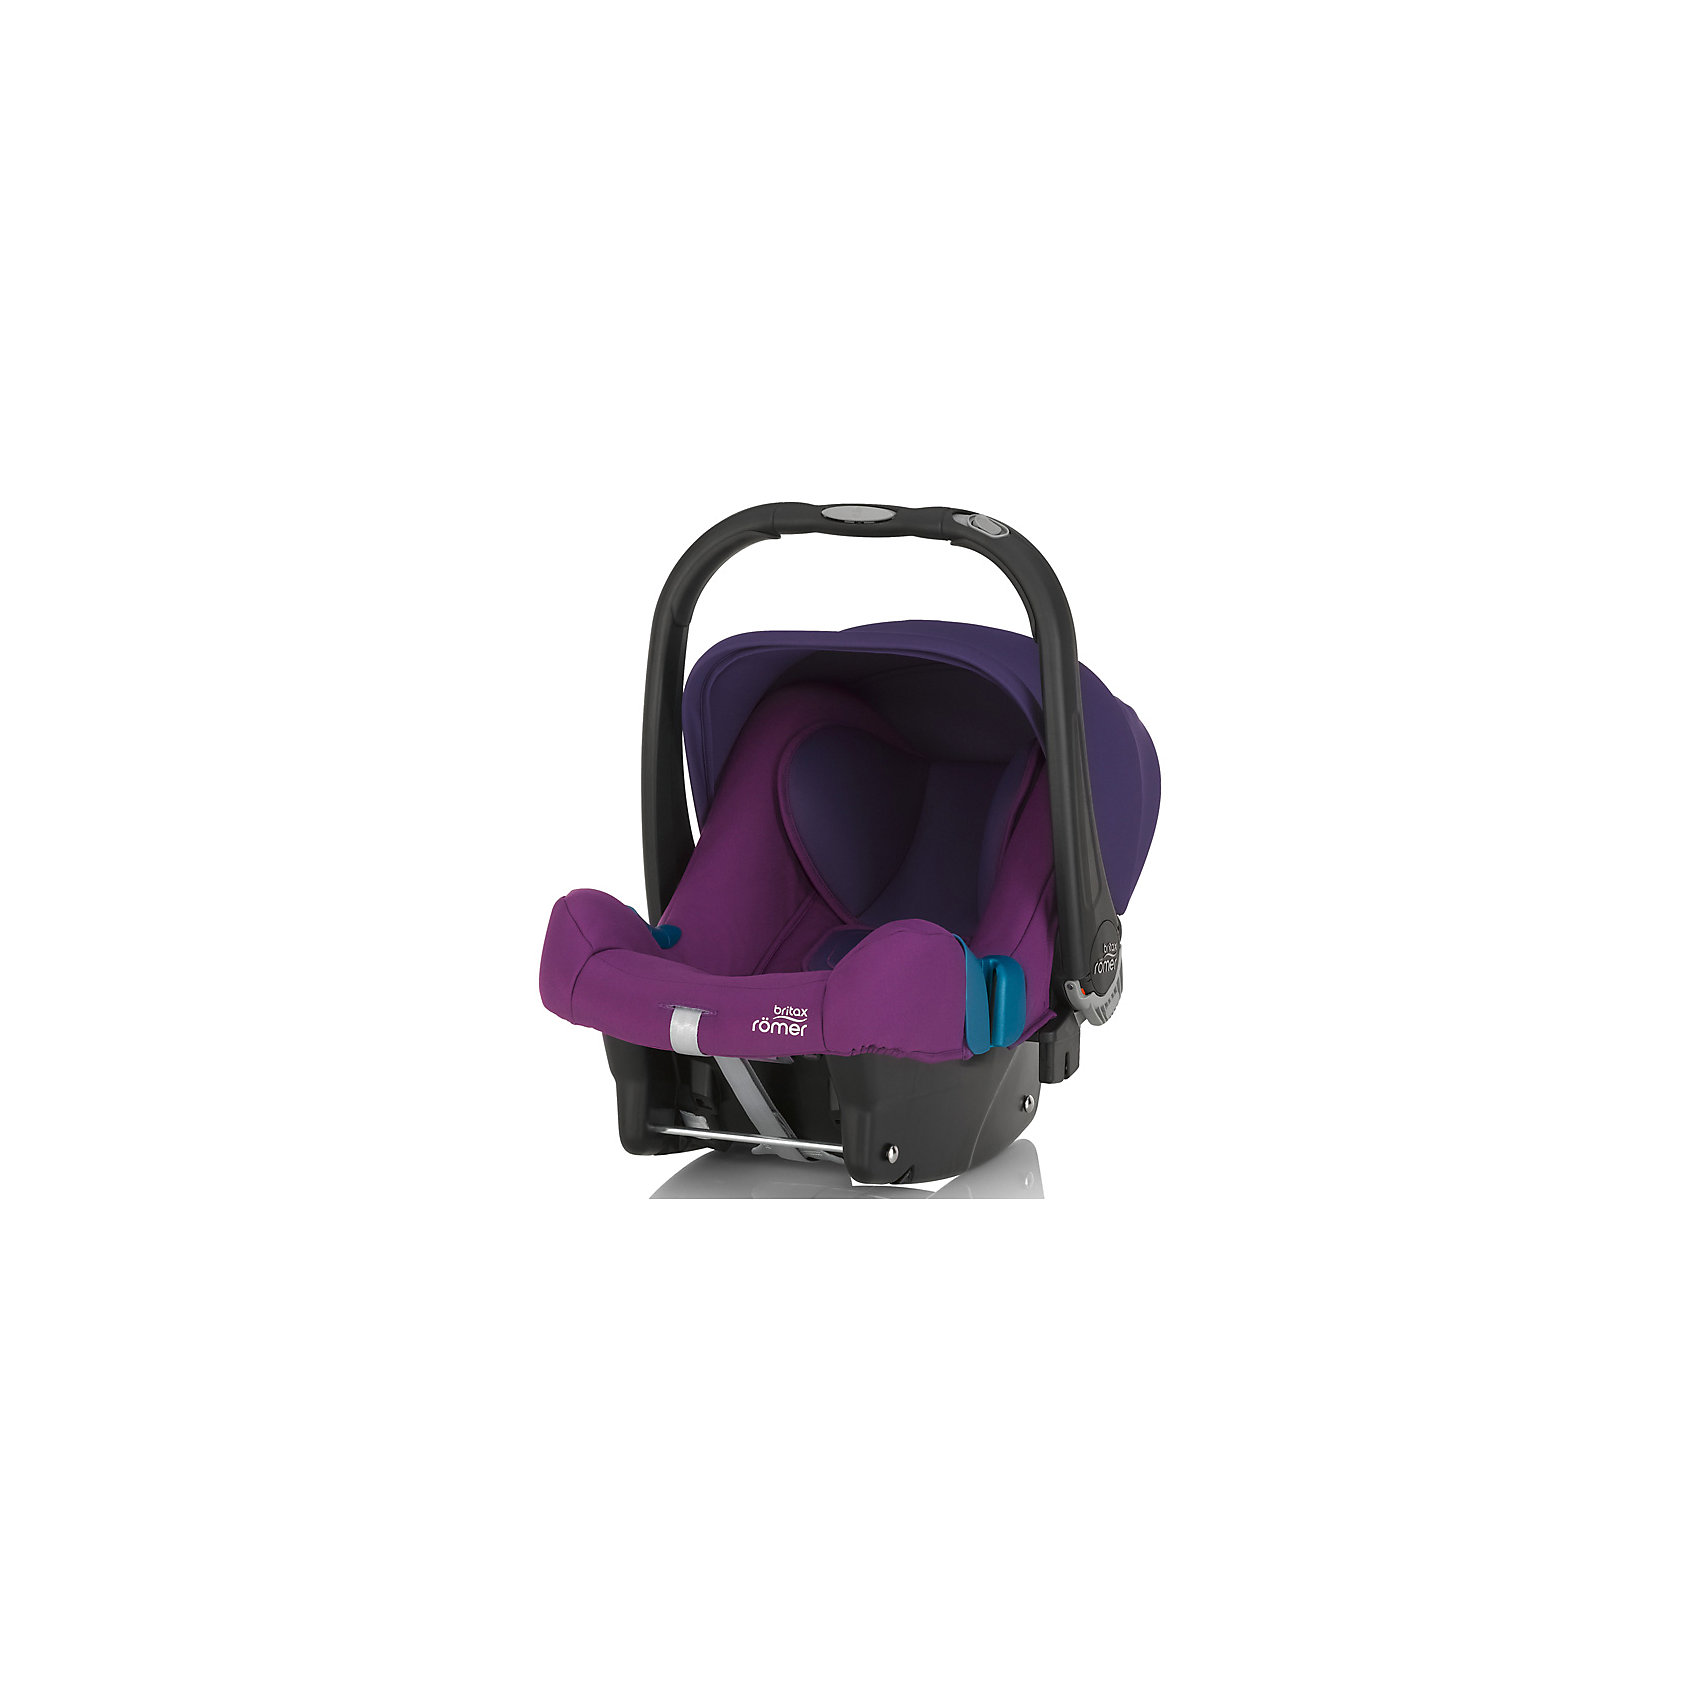 Britax Römer Автокресло Baby-Safe Plus SHR II, 0-13 кг., Britax Roemer, Mineral Purple britax roemer britax roemer автокресло baby safe plus shr ii green marble highline